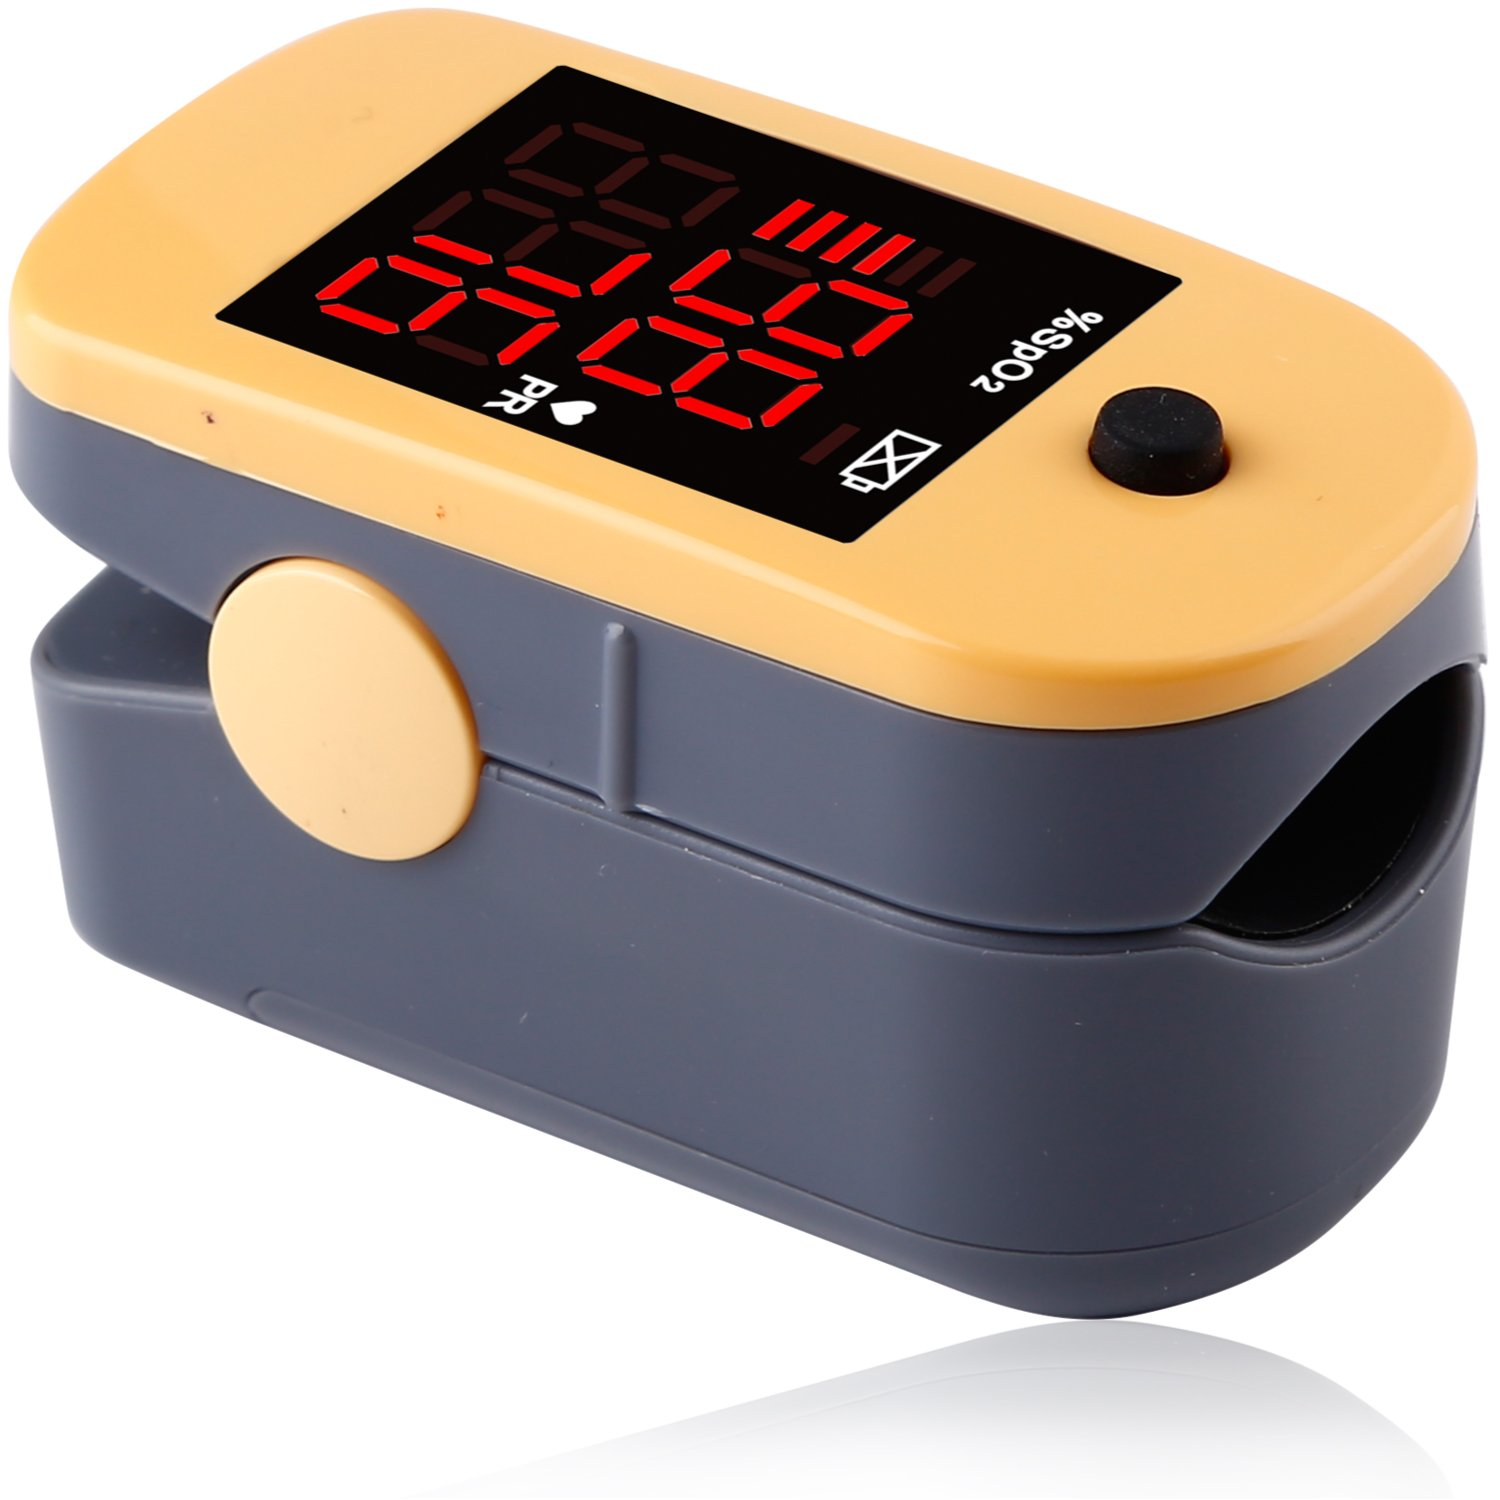 CHOICEMMED Yellow Finger Pulse Oximeter - Blood Oxygen Saturation Monitor Great as SPO2 Pulse Oximeter - Portable Oxygen Sensor with Included Batteries - O2 Saturation Monitor with Carry Pouch